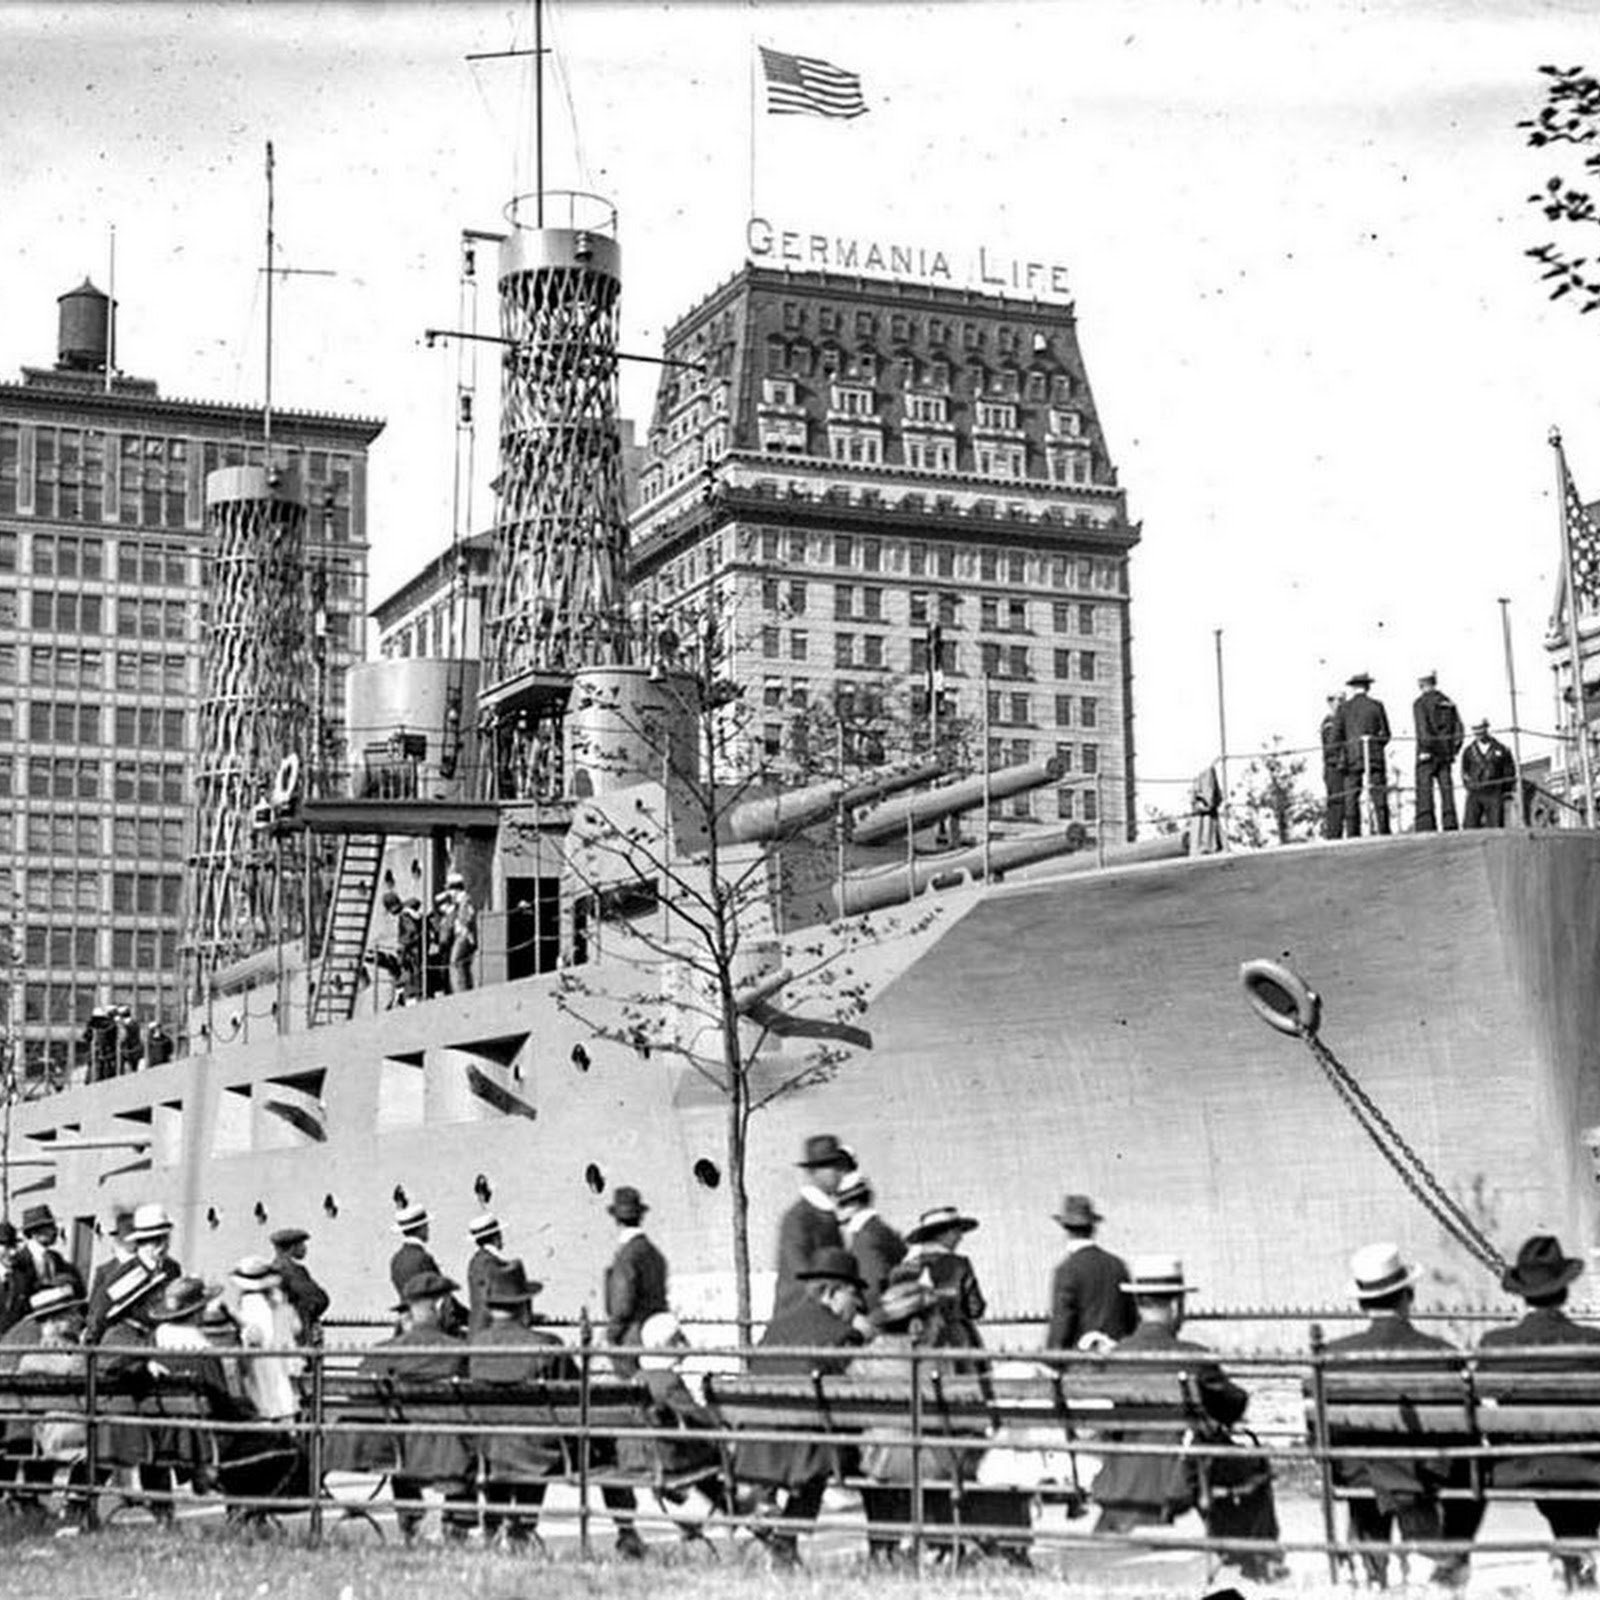 USS Recruit: The Battleship That Sprang Up In The Middle of New York City